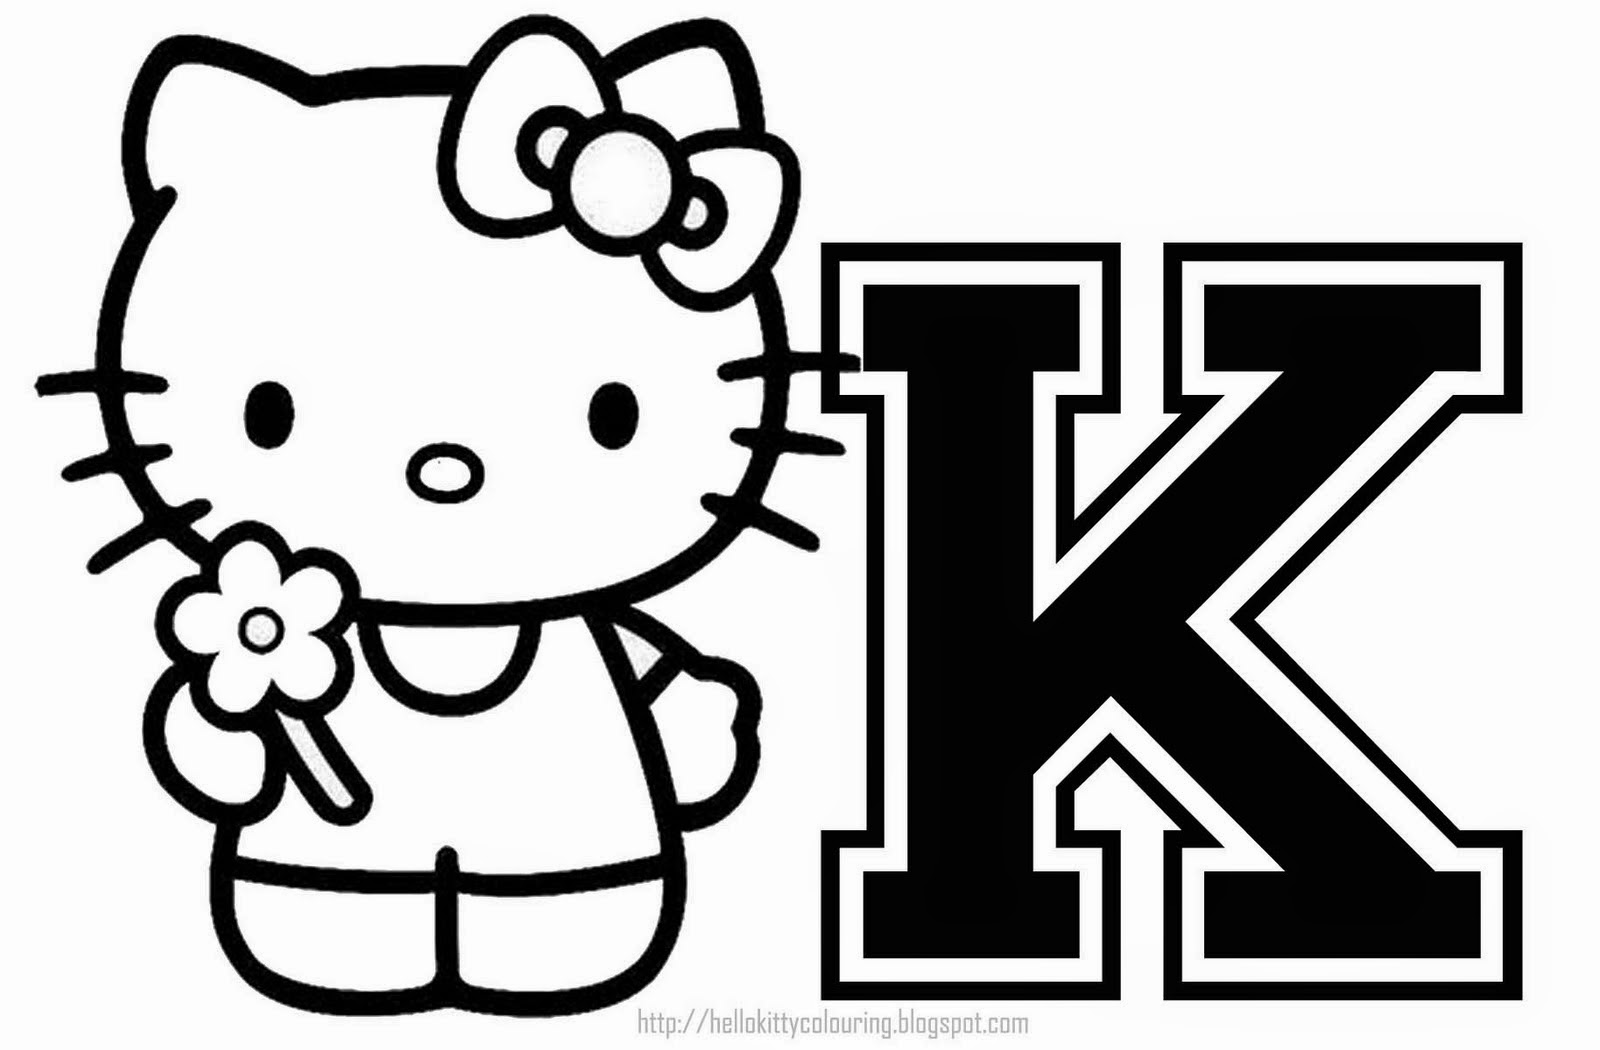 HELLO KITTY COLORING: PERSONALIZED COLORING PAGE INITIAL LETTER ... | Hello Kitty Abc Coloring Pages  | title